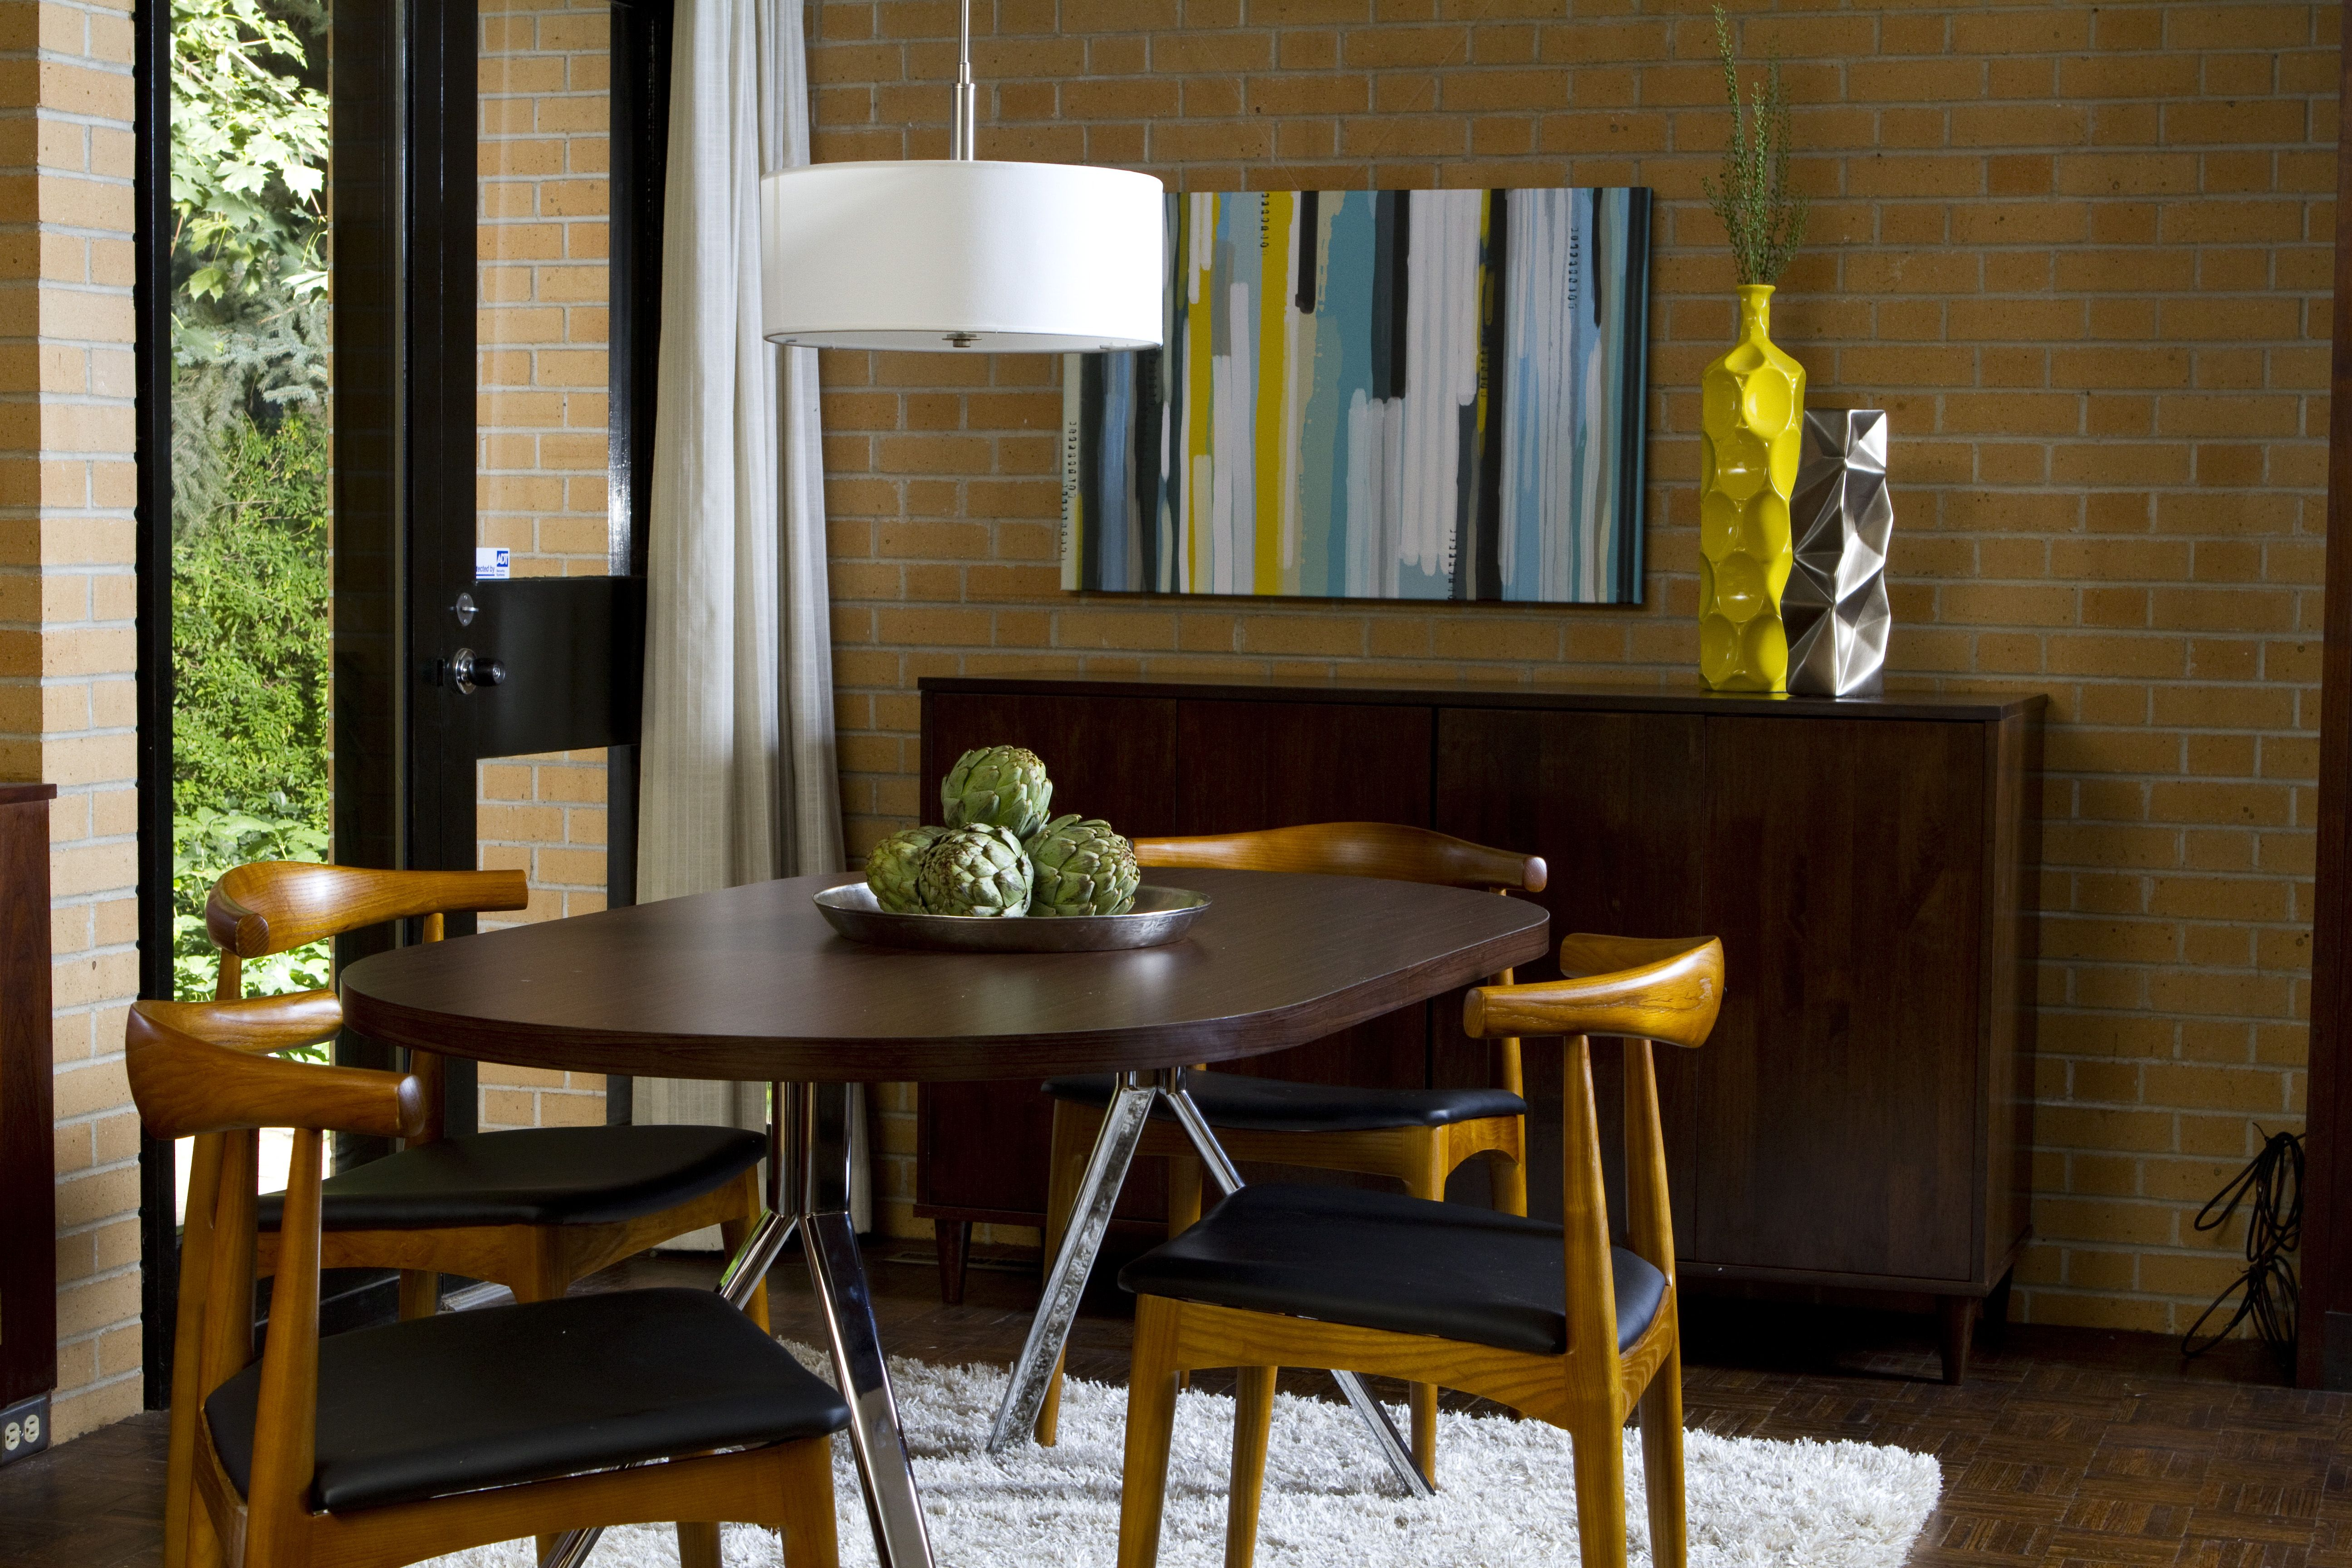 28 Simple Dining Room Ideas For A Stunning Inspiration: Shop Beautiful Dining Room Styles